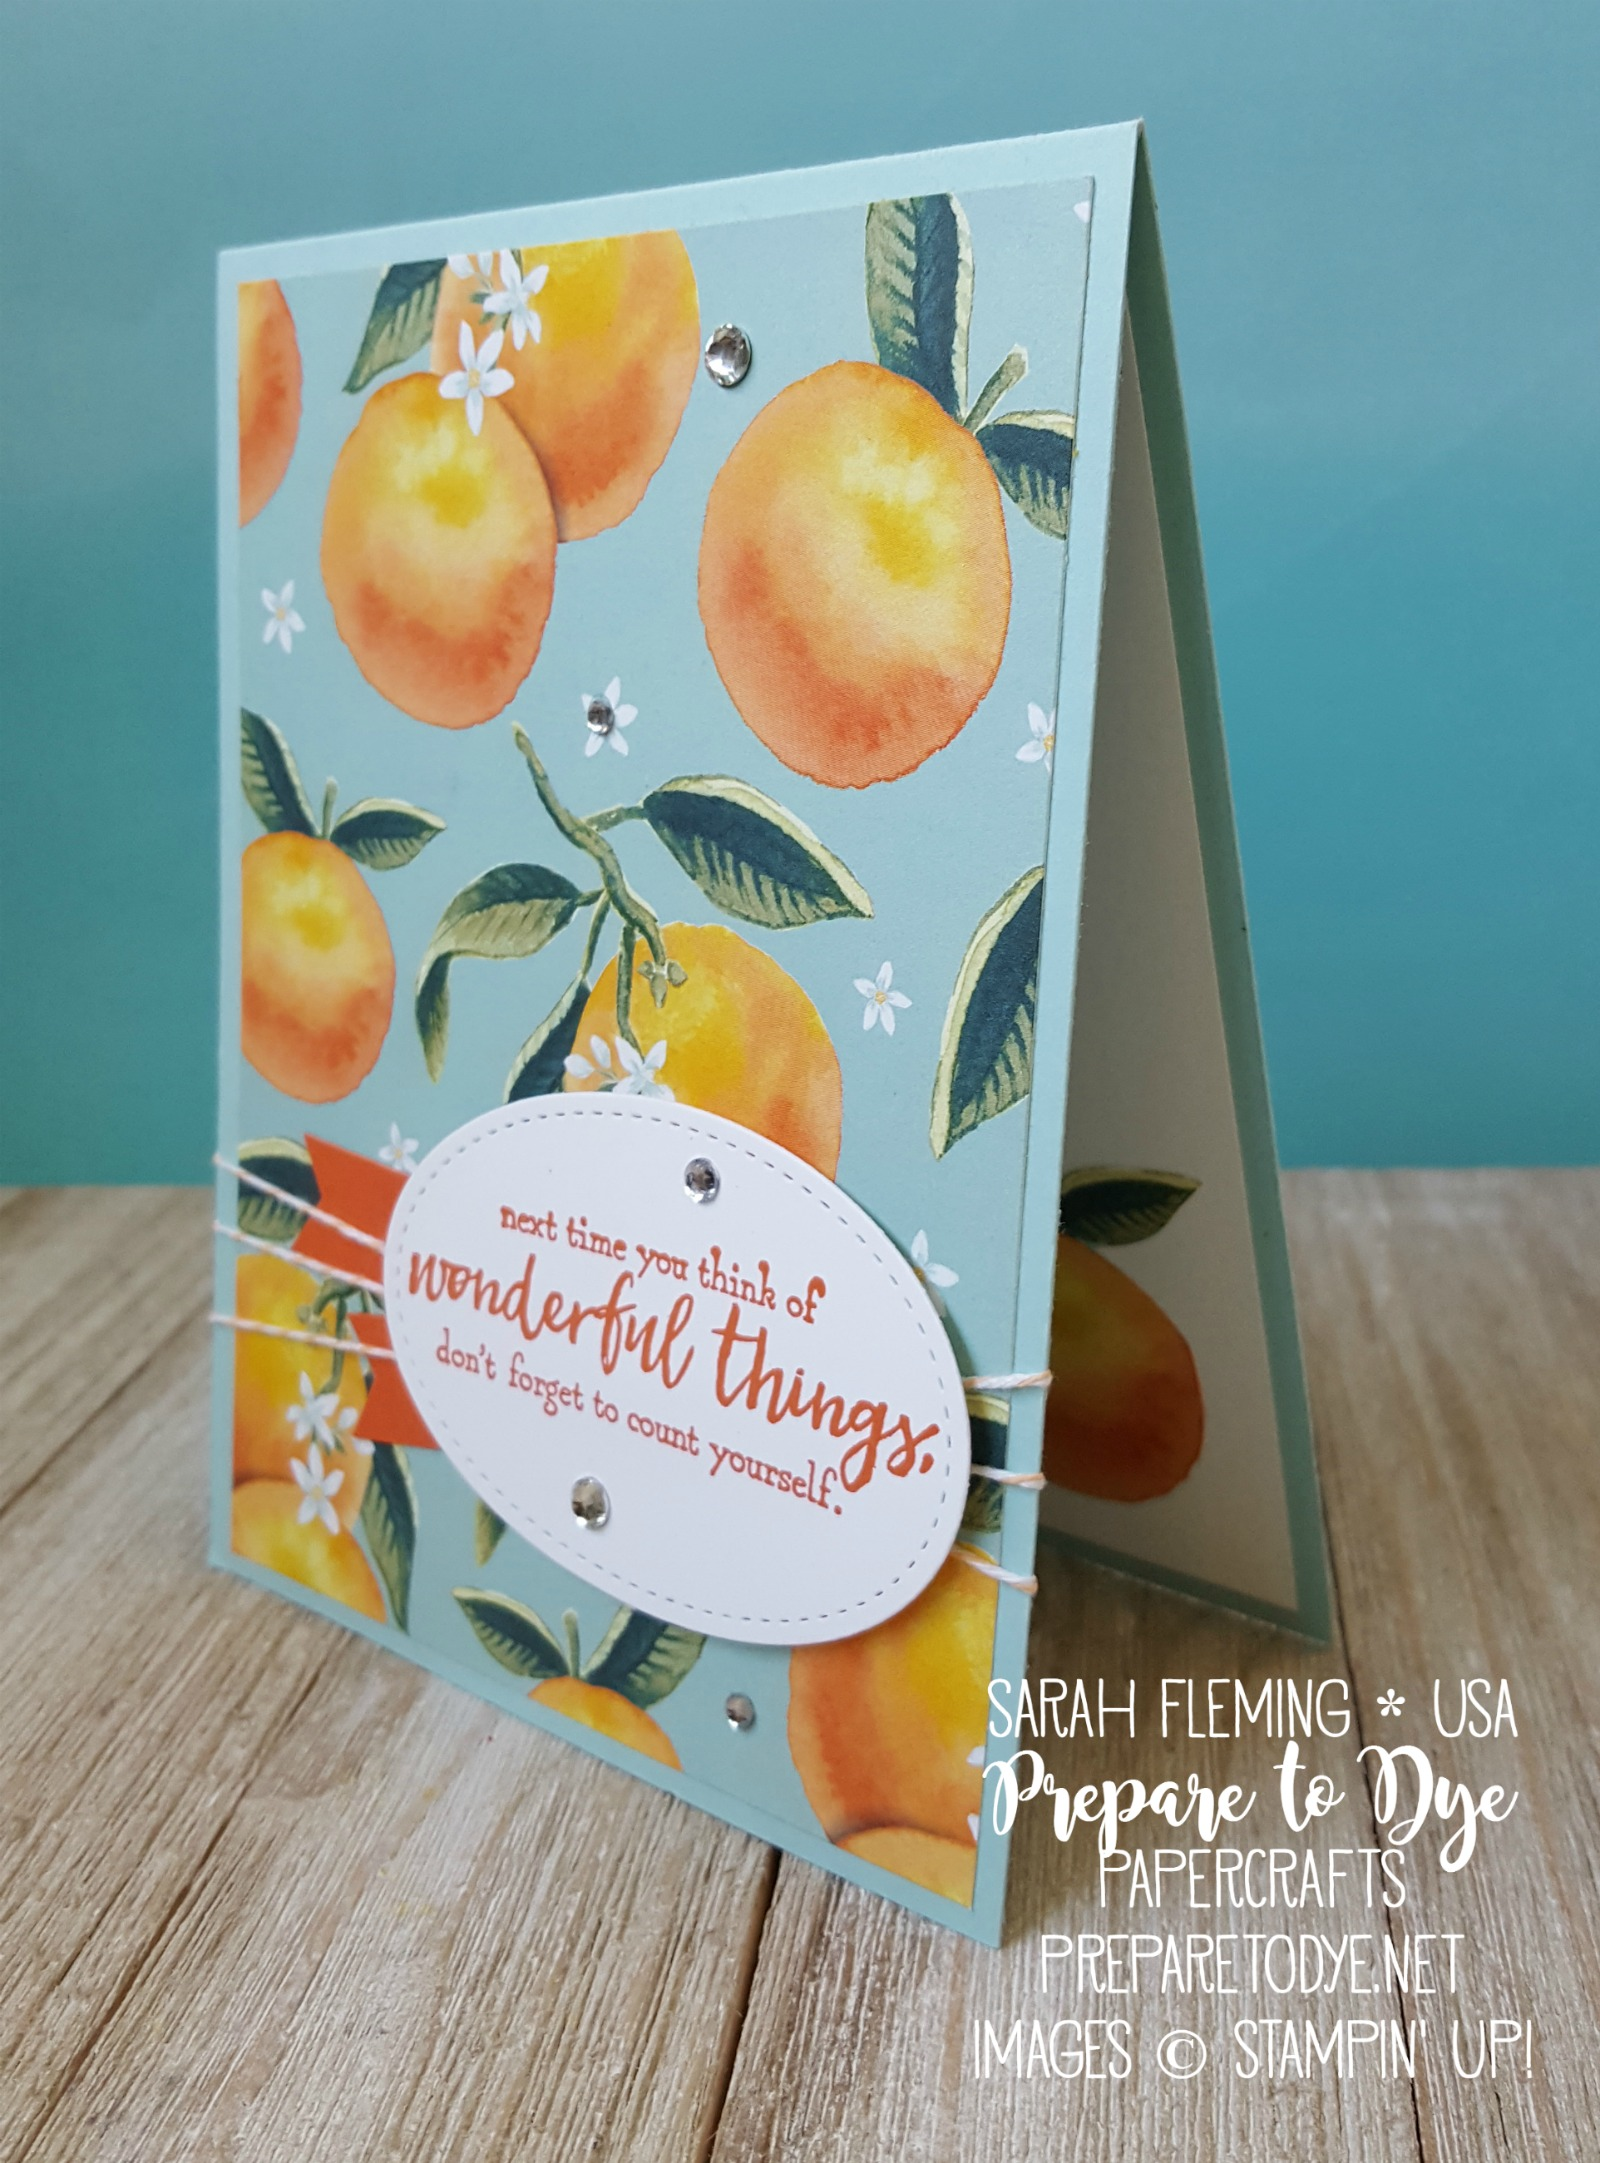 Stampin' Up! Whole Lot of Lovely paper and Just Add Text stamps - RAK Card Group blog hop - Sarah Fleming - Prepare to Dye Papercrafts